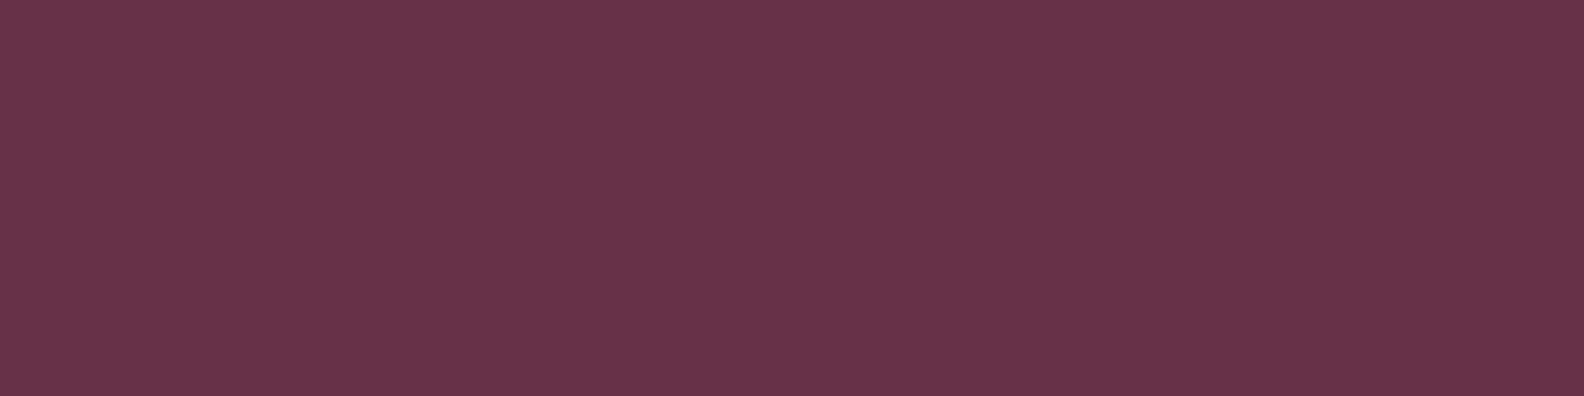 1584x396 Wine Dregs Solid Color Background